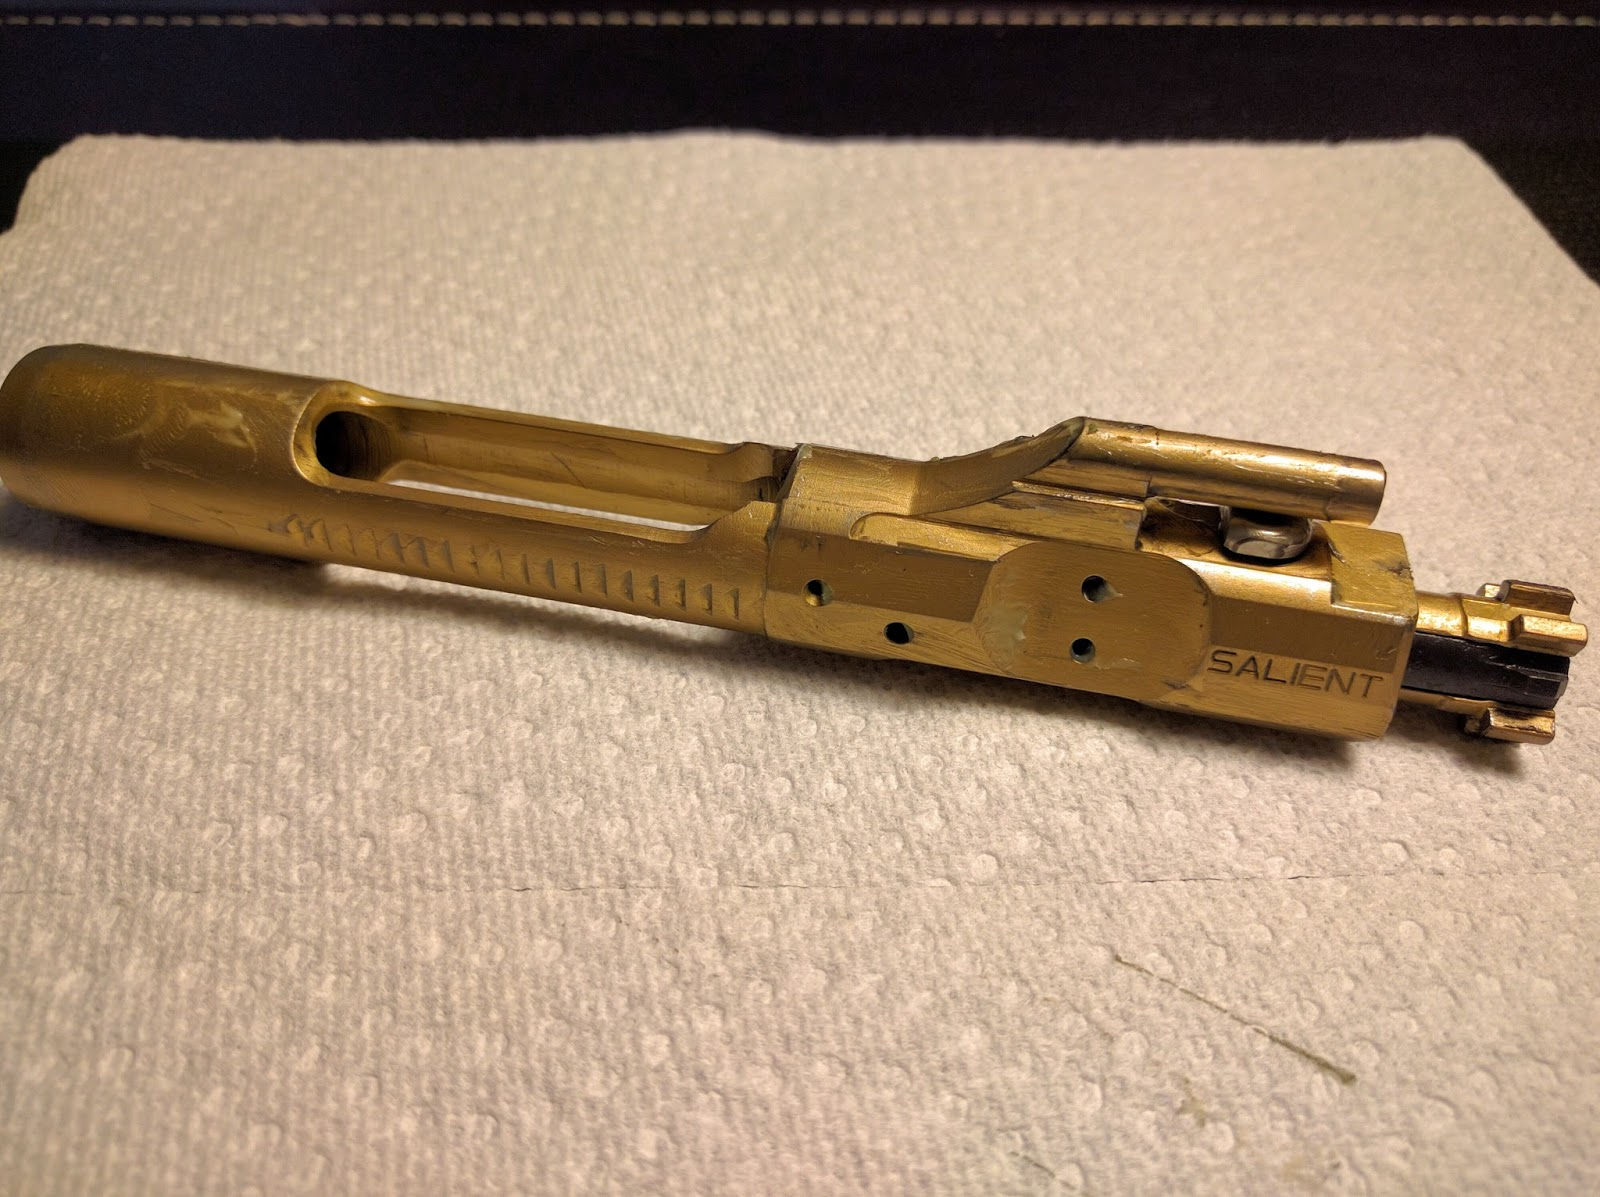 Salient arms international tin bolt carrier group quite possibly after i had completed cleaning re lubricating and reassembling the bcg and rifle i felt as though i made a good decision in buying the bcg from salient sciox Images